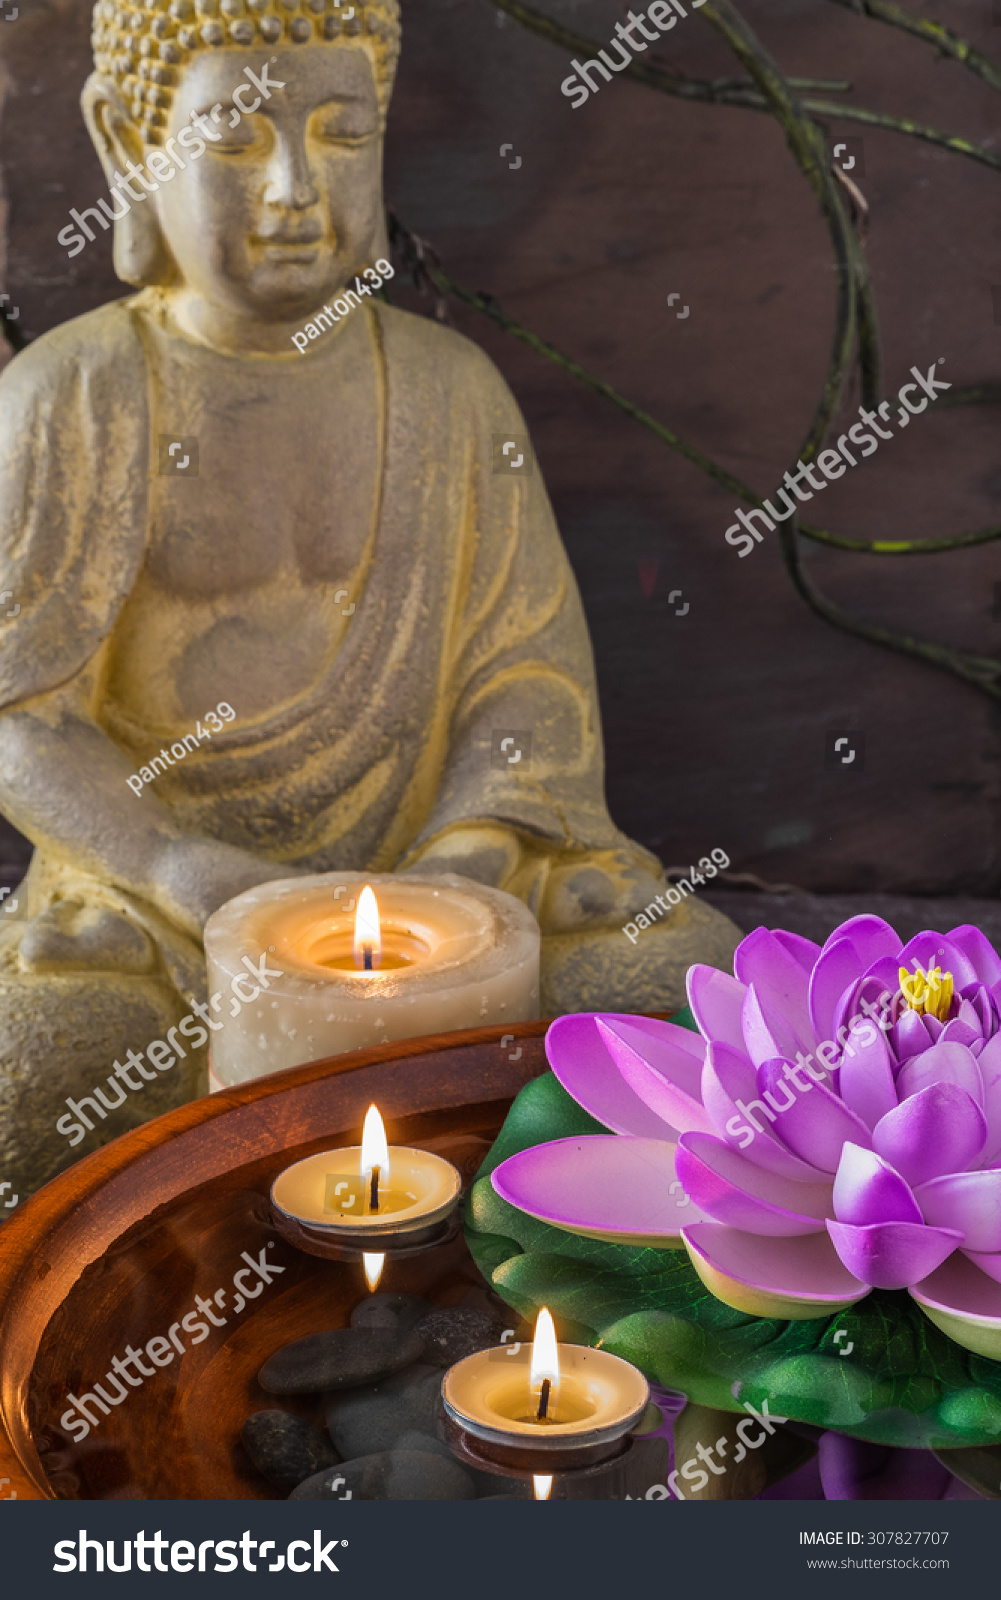 Statue meditating buddha lotus flower floating stock photo edit now statue of meditating buddha and a lotus flower floating with candles izmirmasajfo